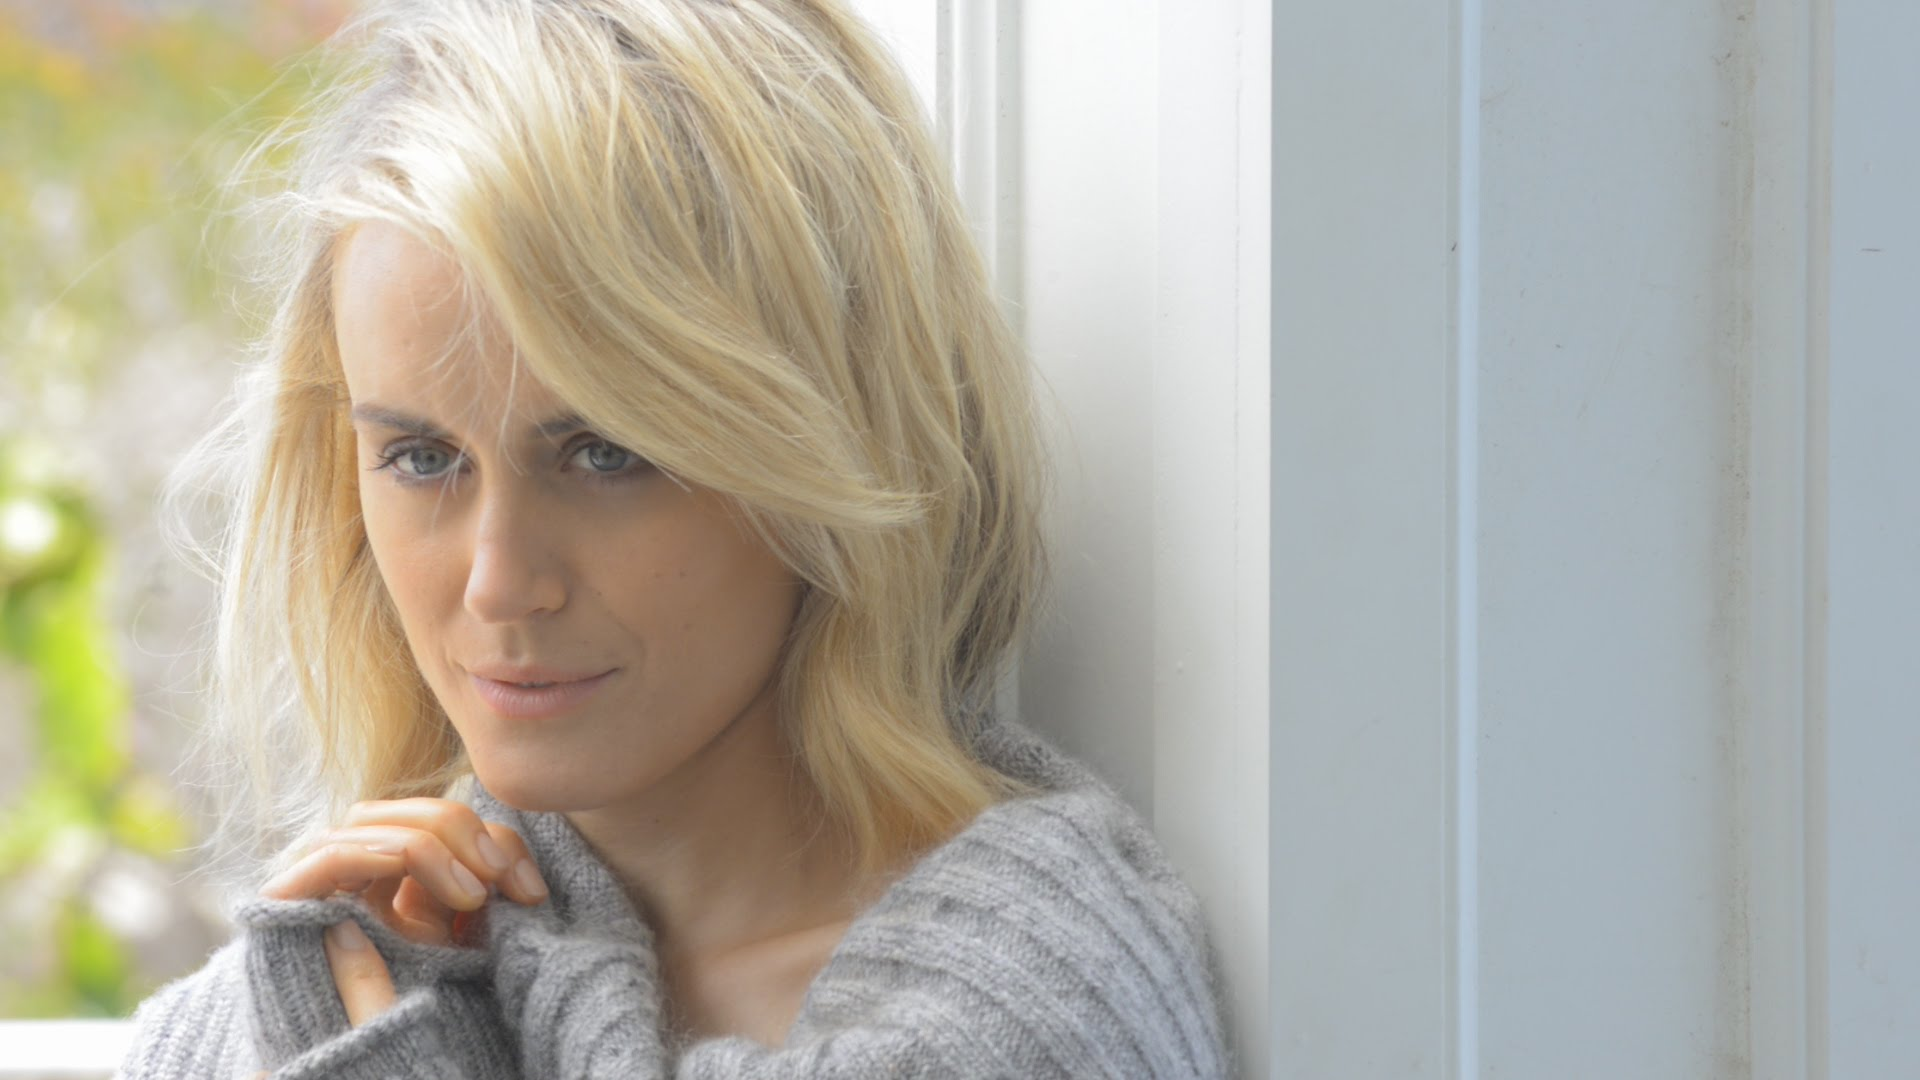 taylor schilling desktop wallpaper 55942